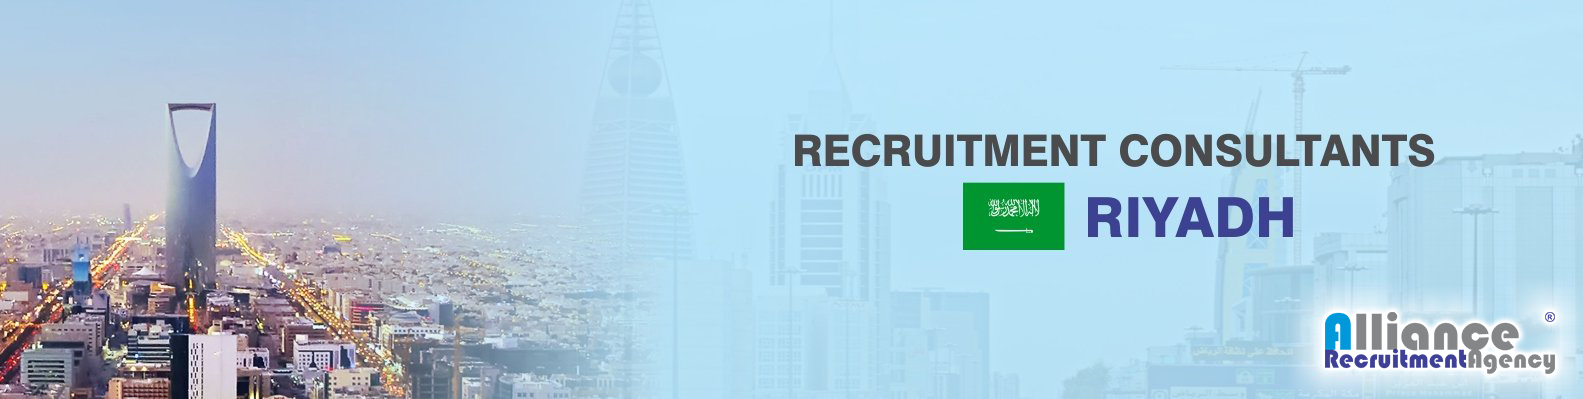 recruitment agency riyadh